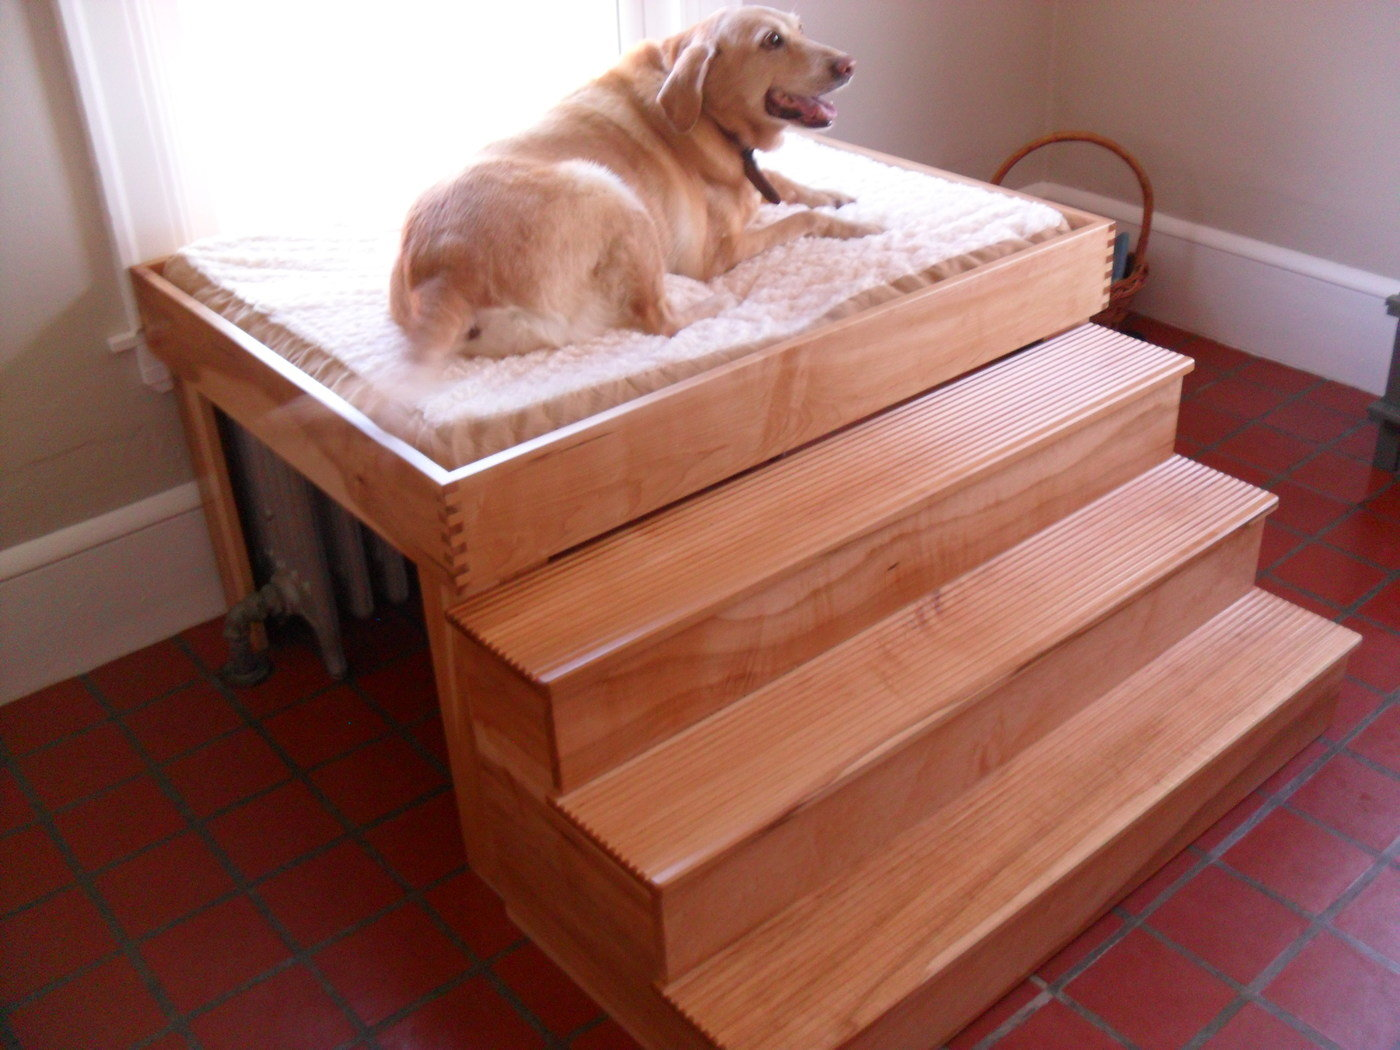 Elevated Dog Bed By Anthony Saporiti At Coroflot Com